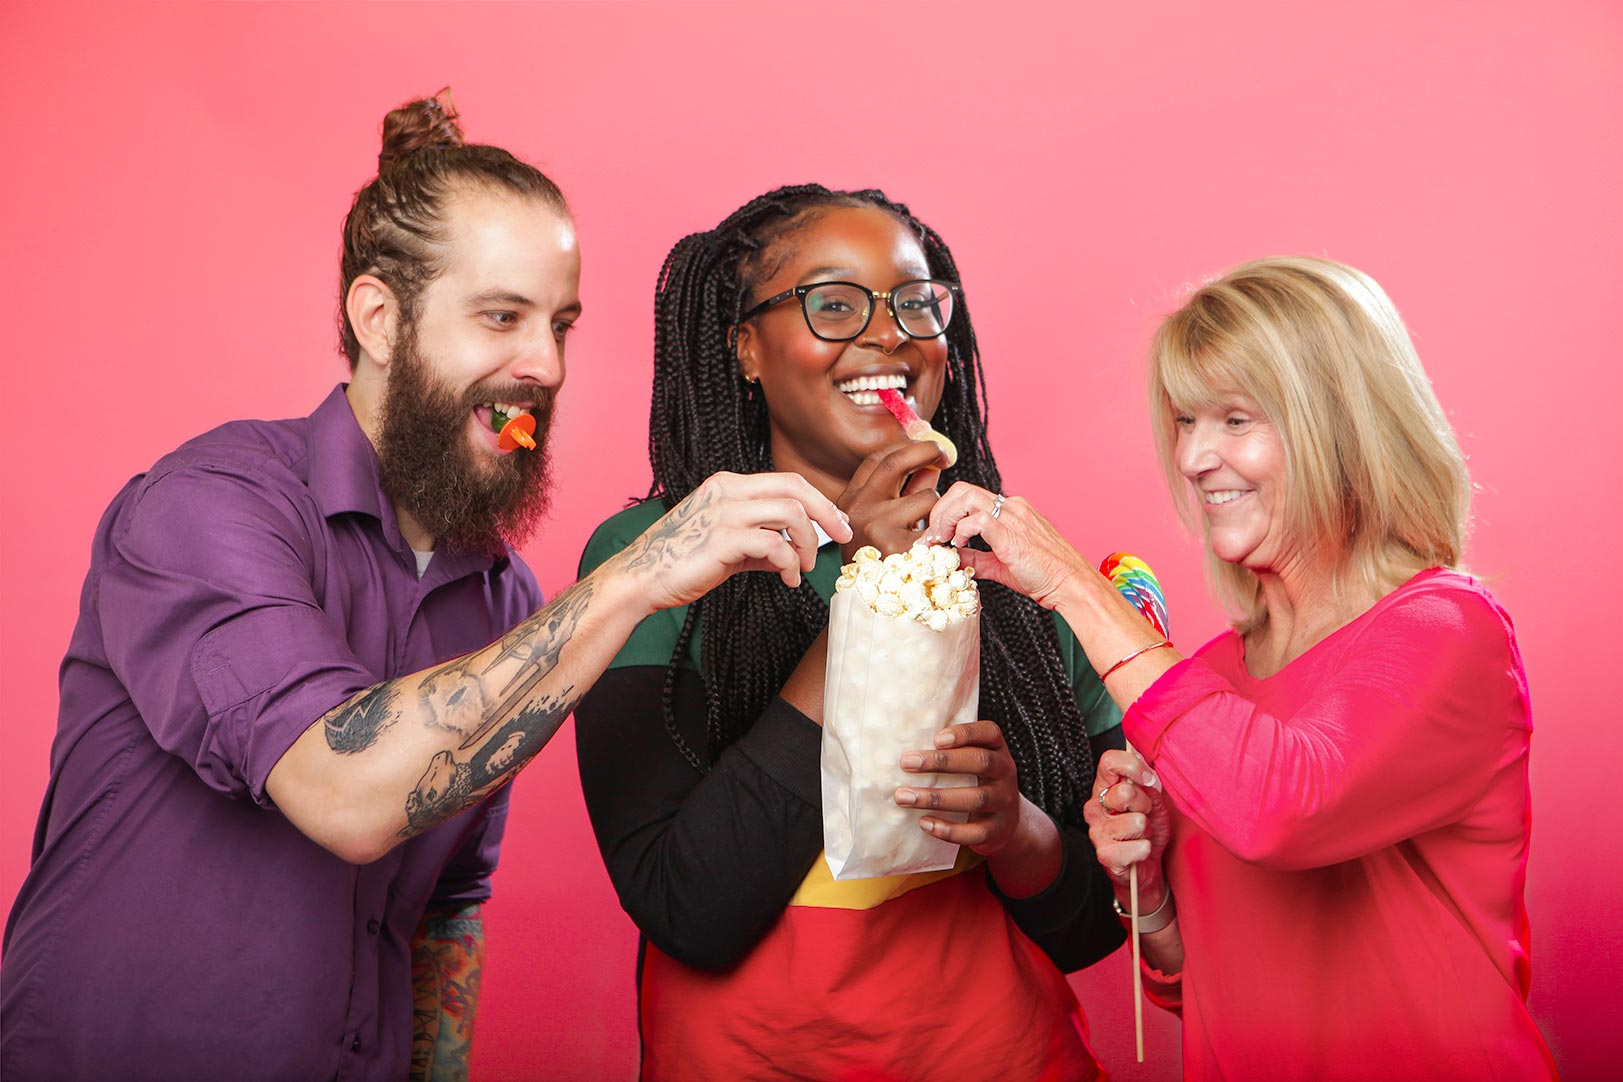 Three people enjoying candy and a bag of popcorn together